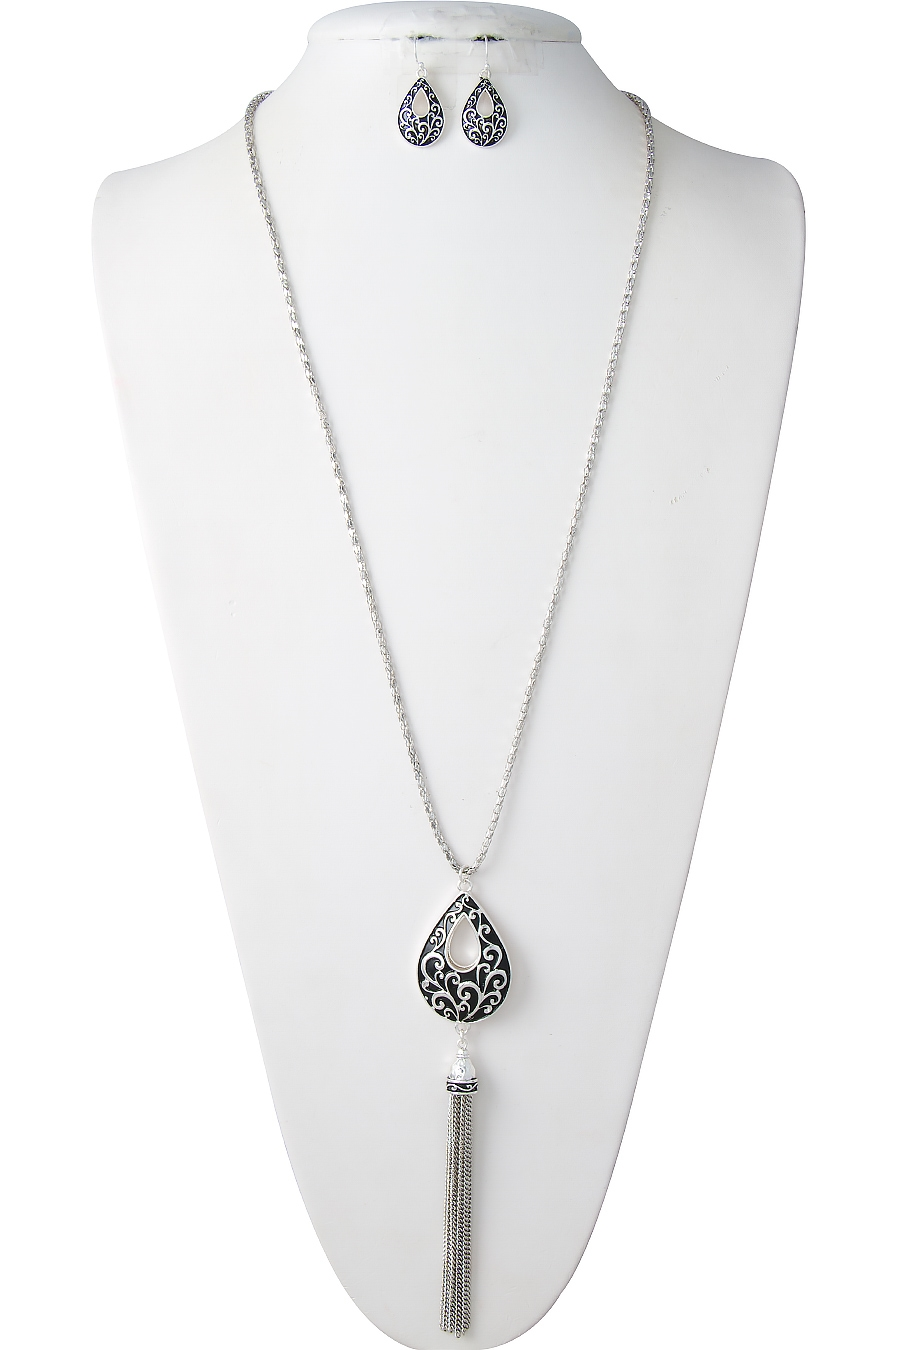 FILIGREE TEARDROP NECKLACE - orangeshine.com